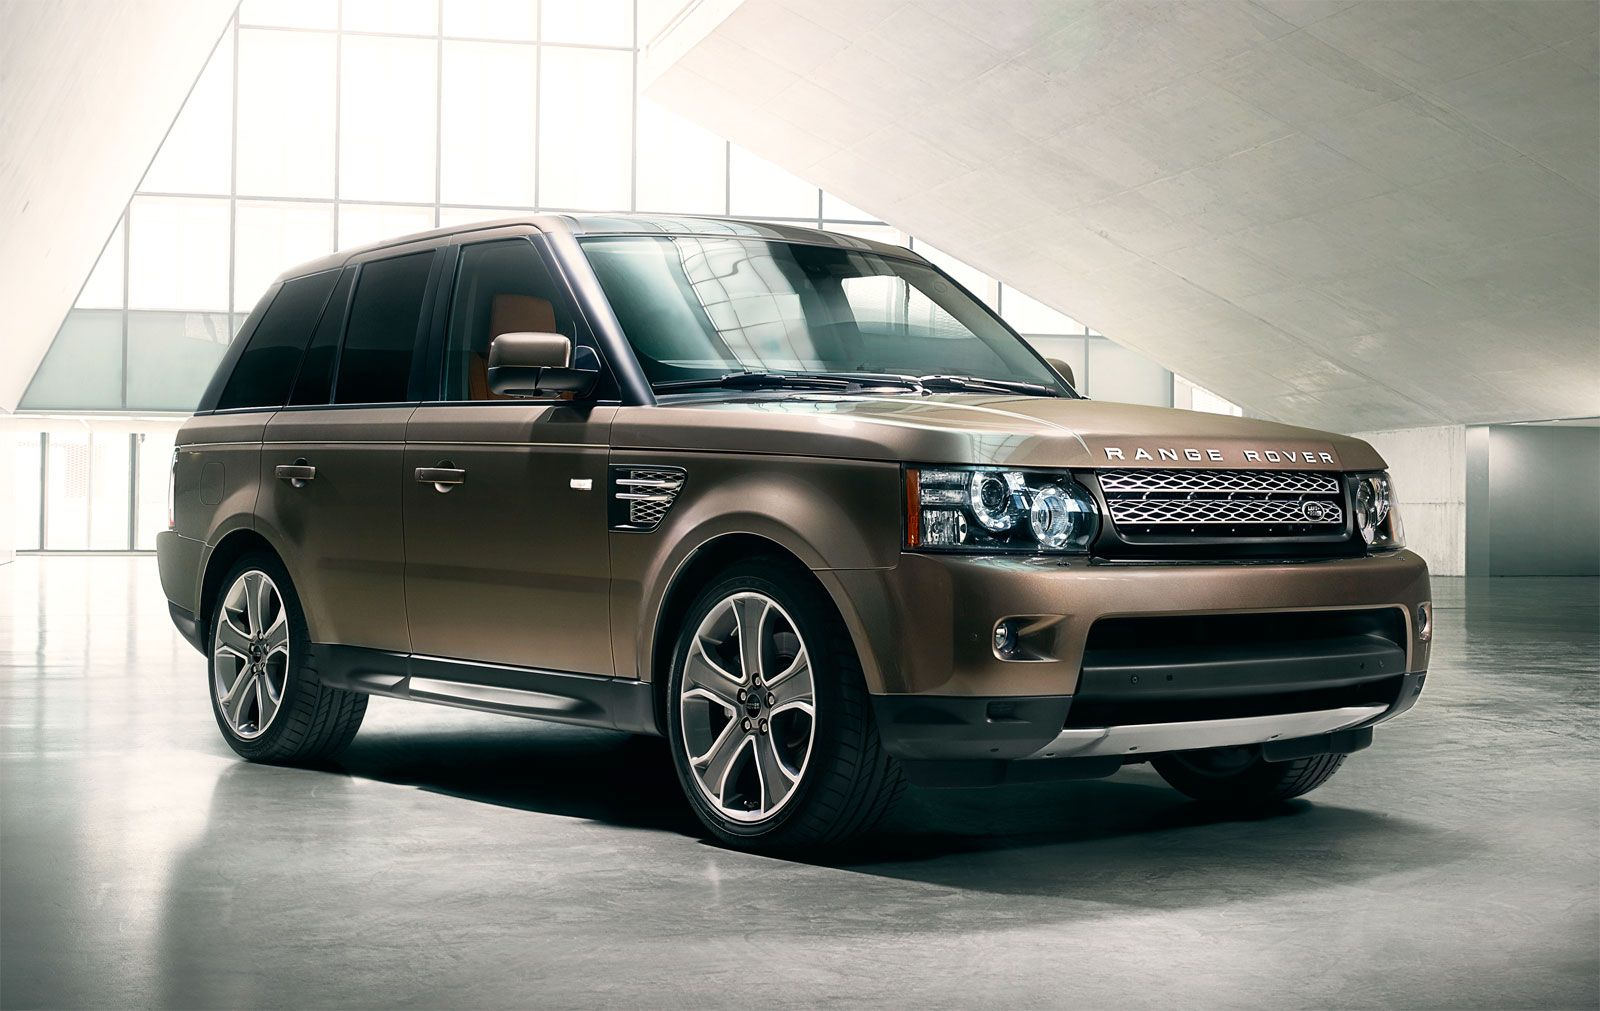 Ok it s a range rover but a good one a 480 horsepower very sporty range rover it s a supercar to sports utility vechiles or is it